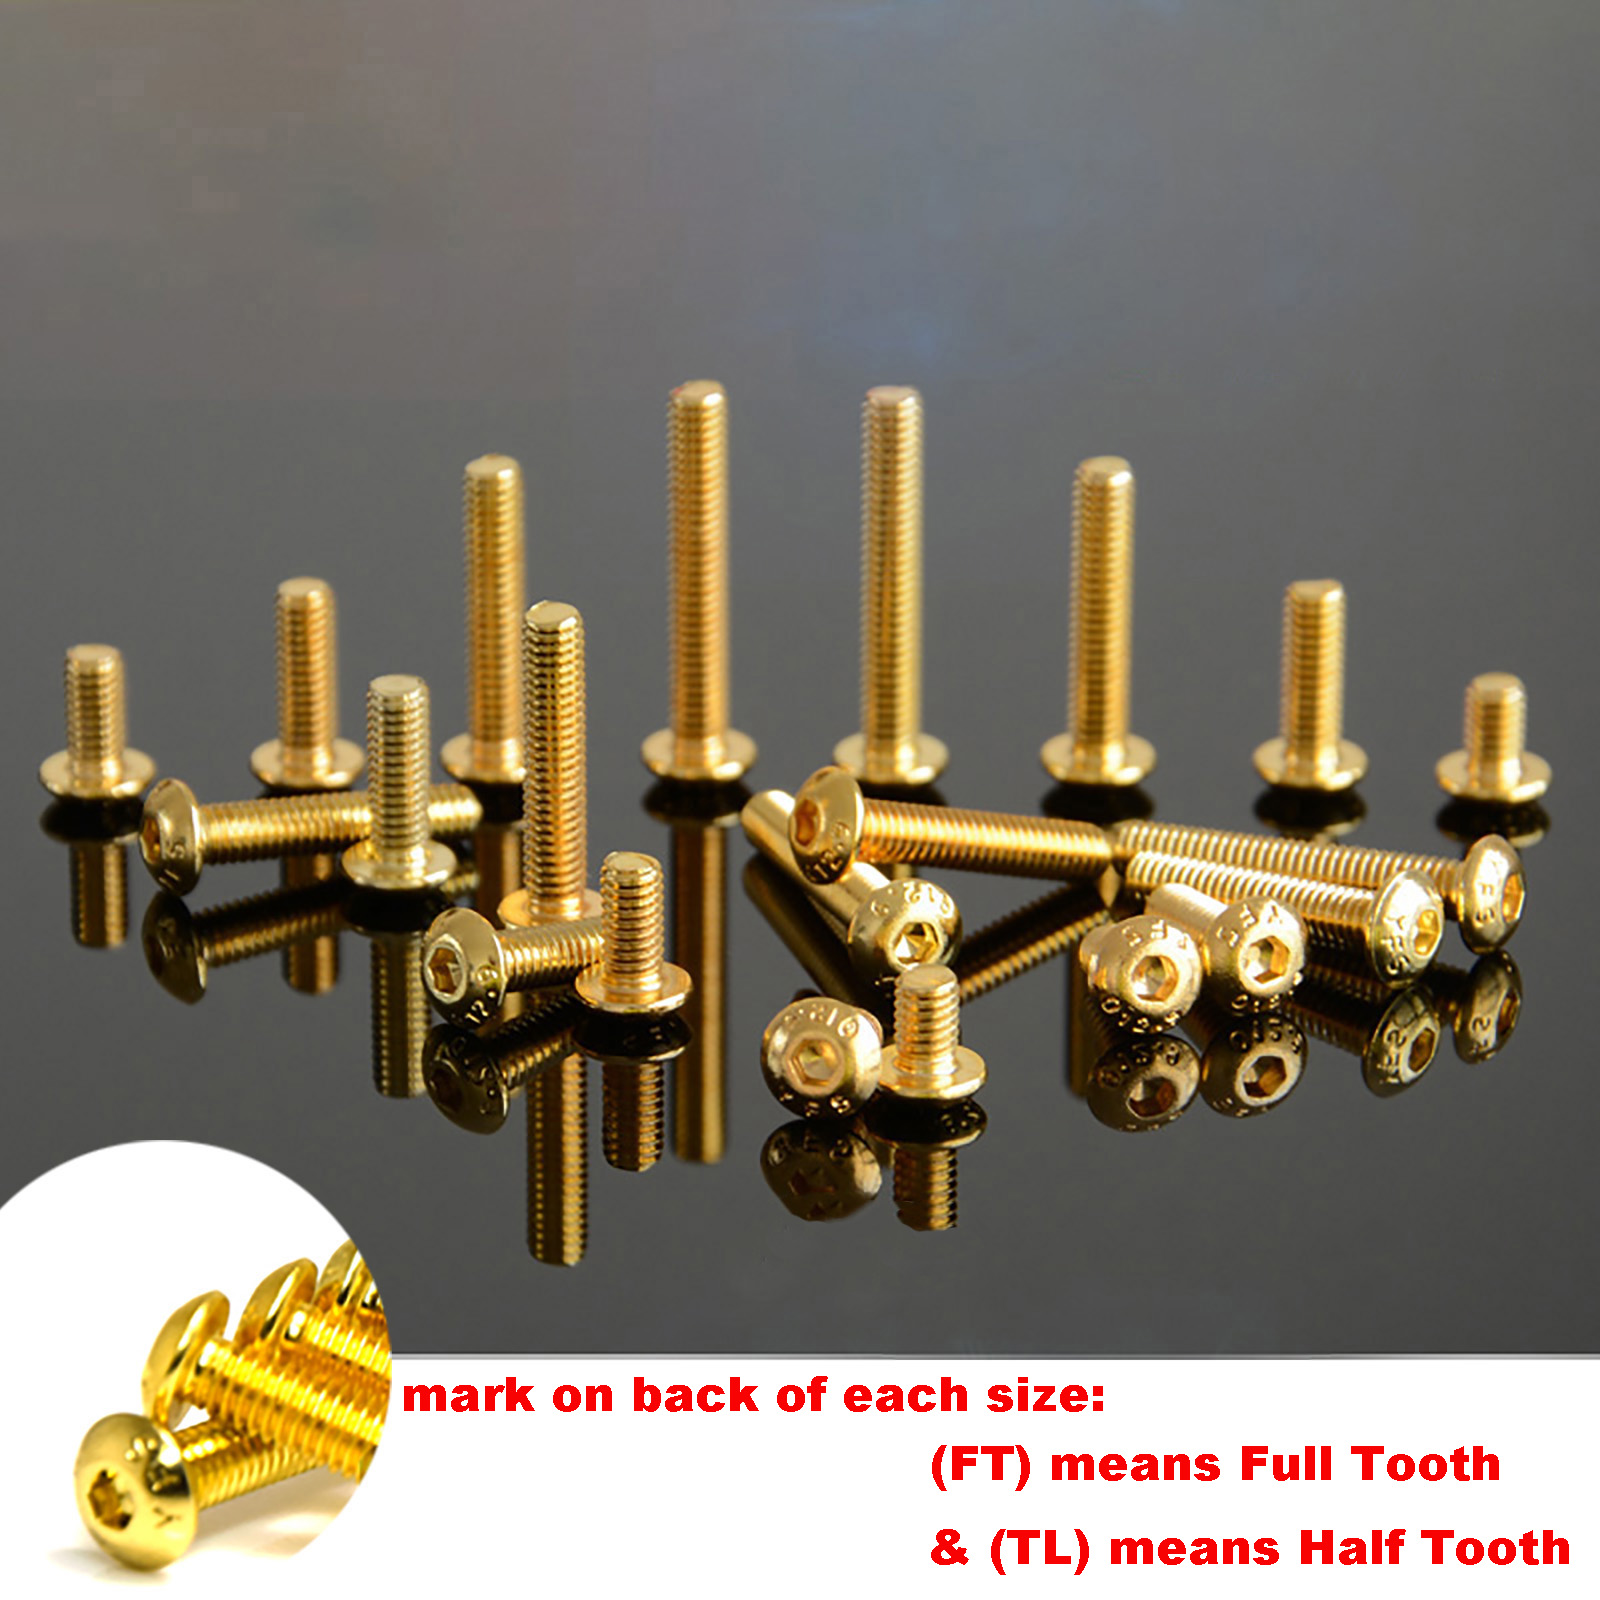 10 pc  M2x4mm 12.9 Alloy Socket Hex Cup Screws USA Shipping